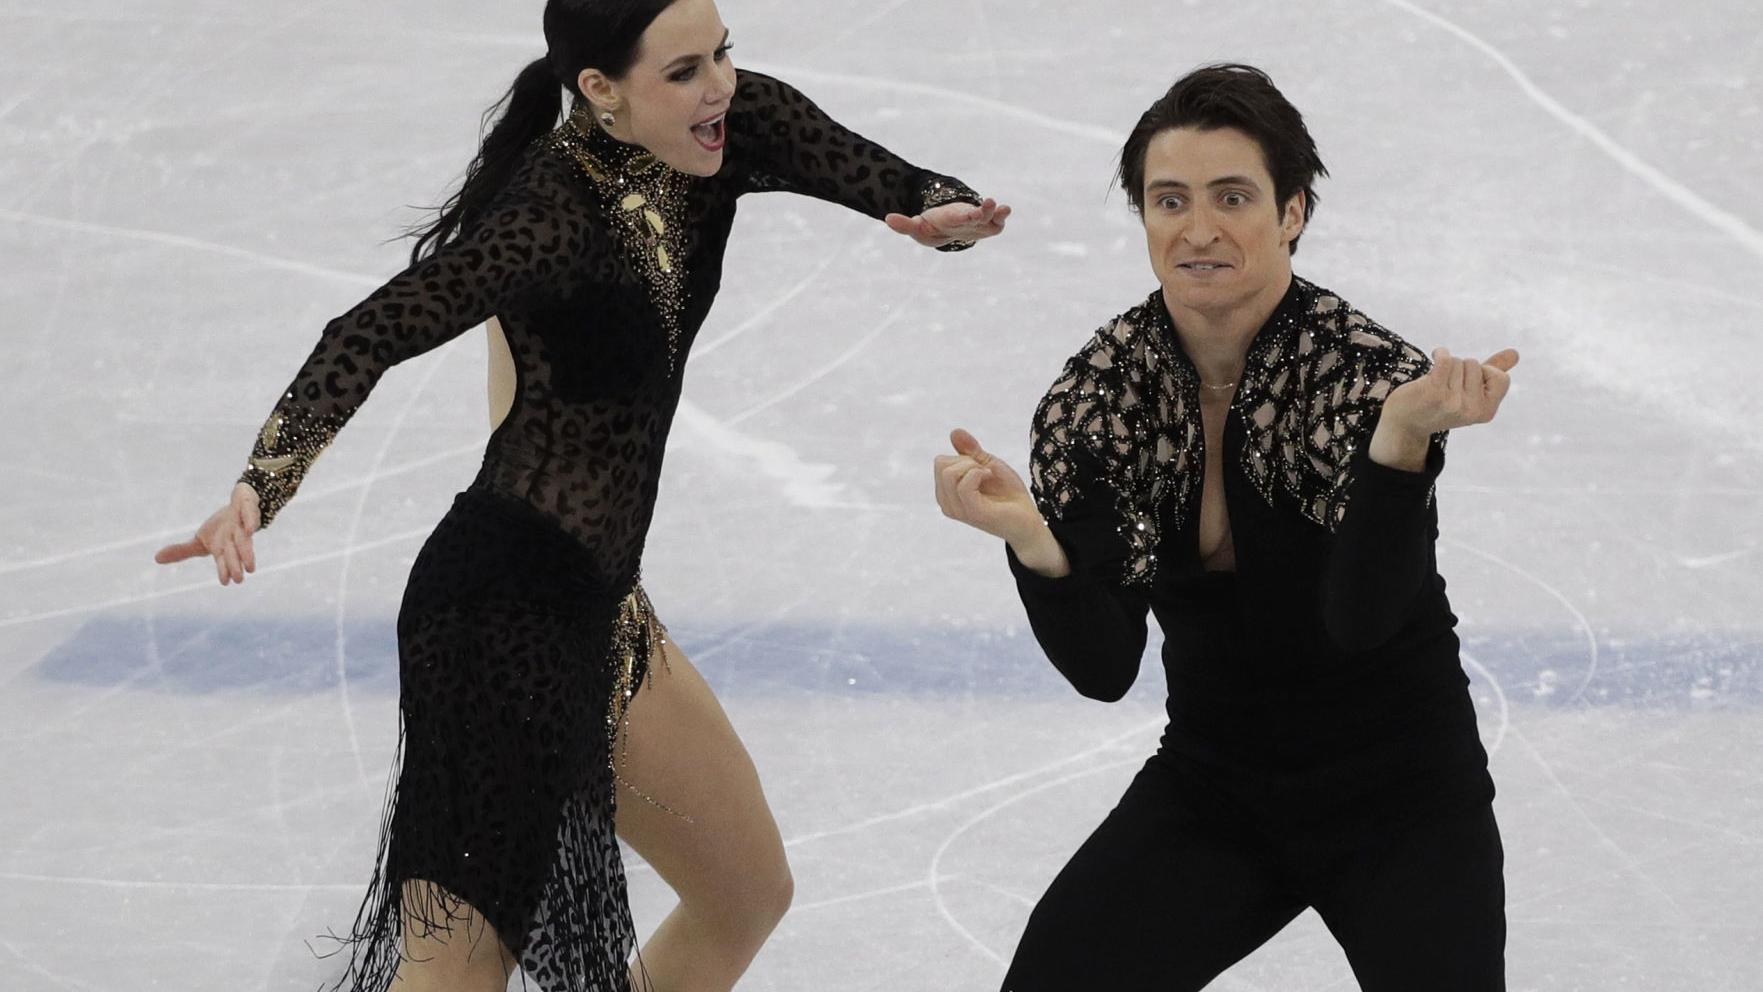 Ice dancing, speed skating and more on center stage at Olympics